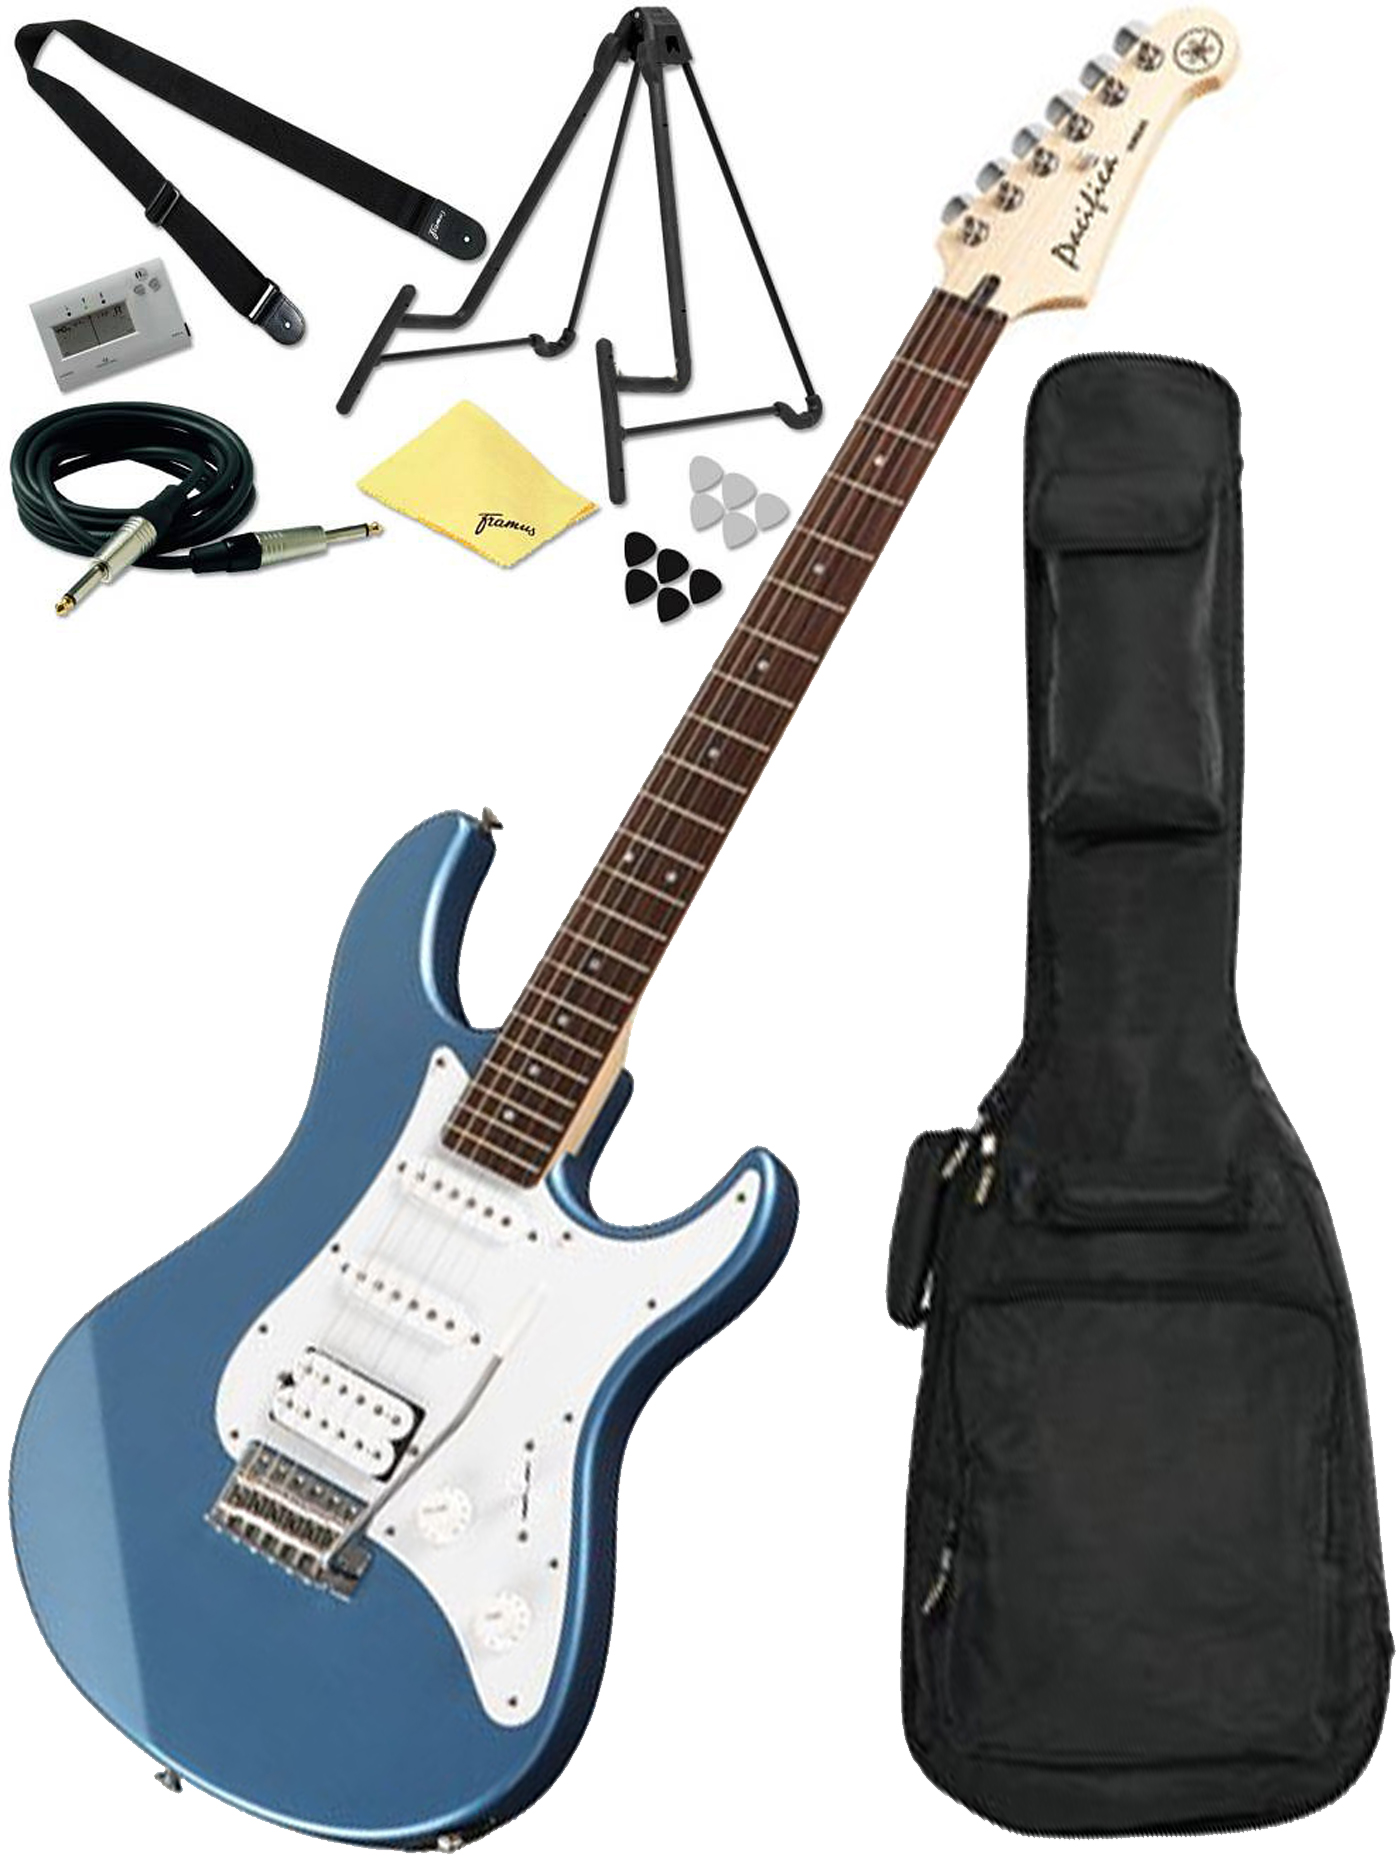 yamaha pacifica pac112j lb lake blue electric guitar bundle w accessory pac ebay. Black Bedroom Furniture Sets. Home Design Ideas